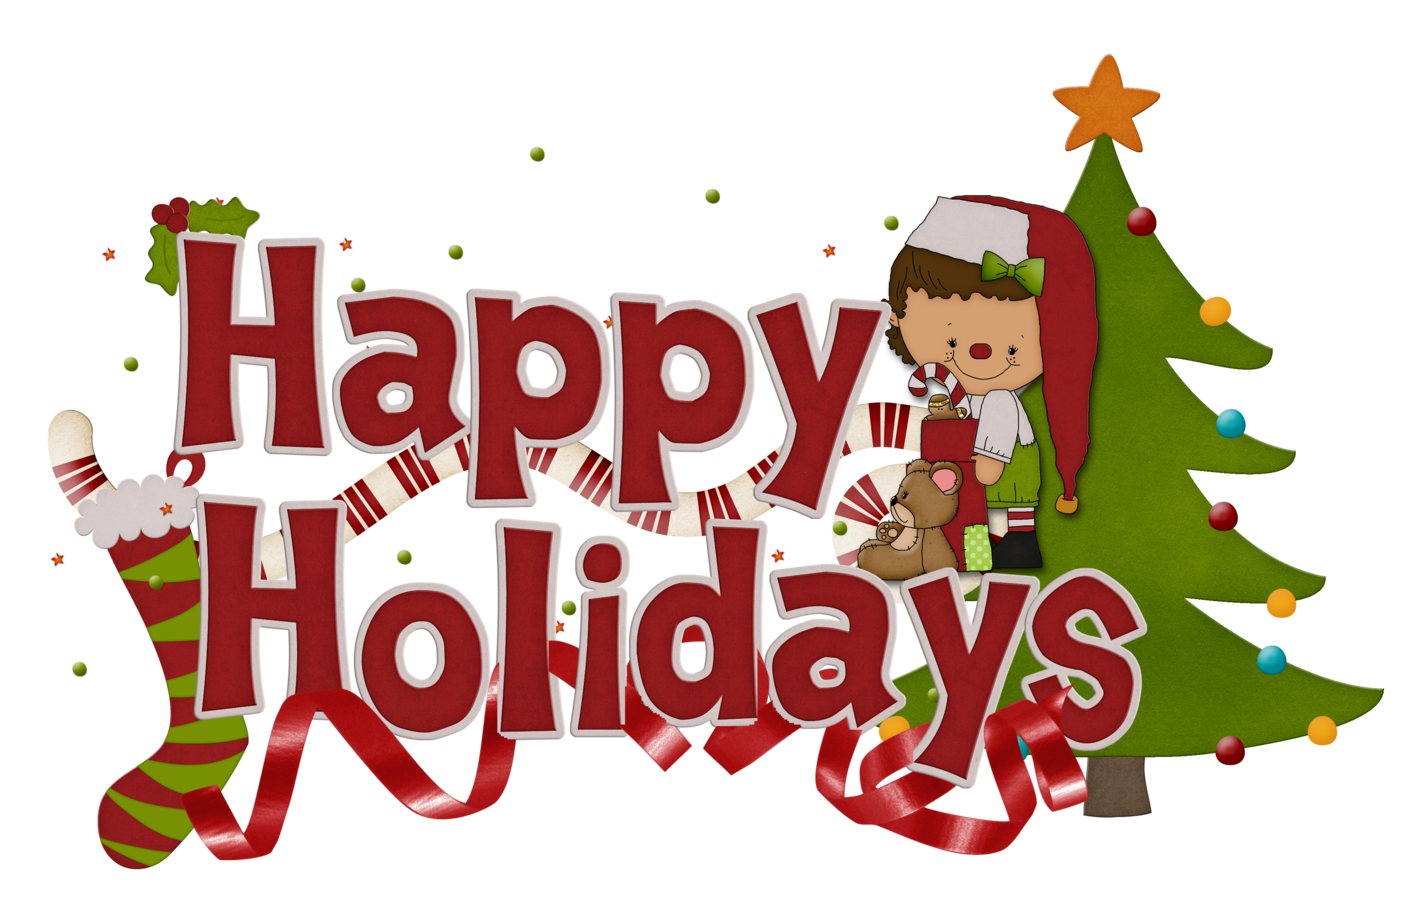 Happy Holidays Pictures, Images, Graphics for Facebook ...